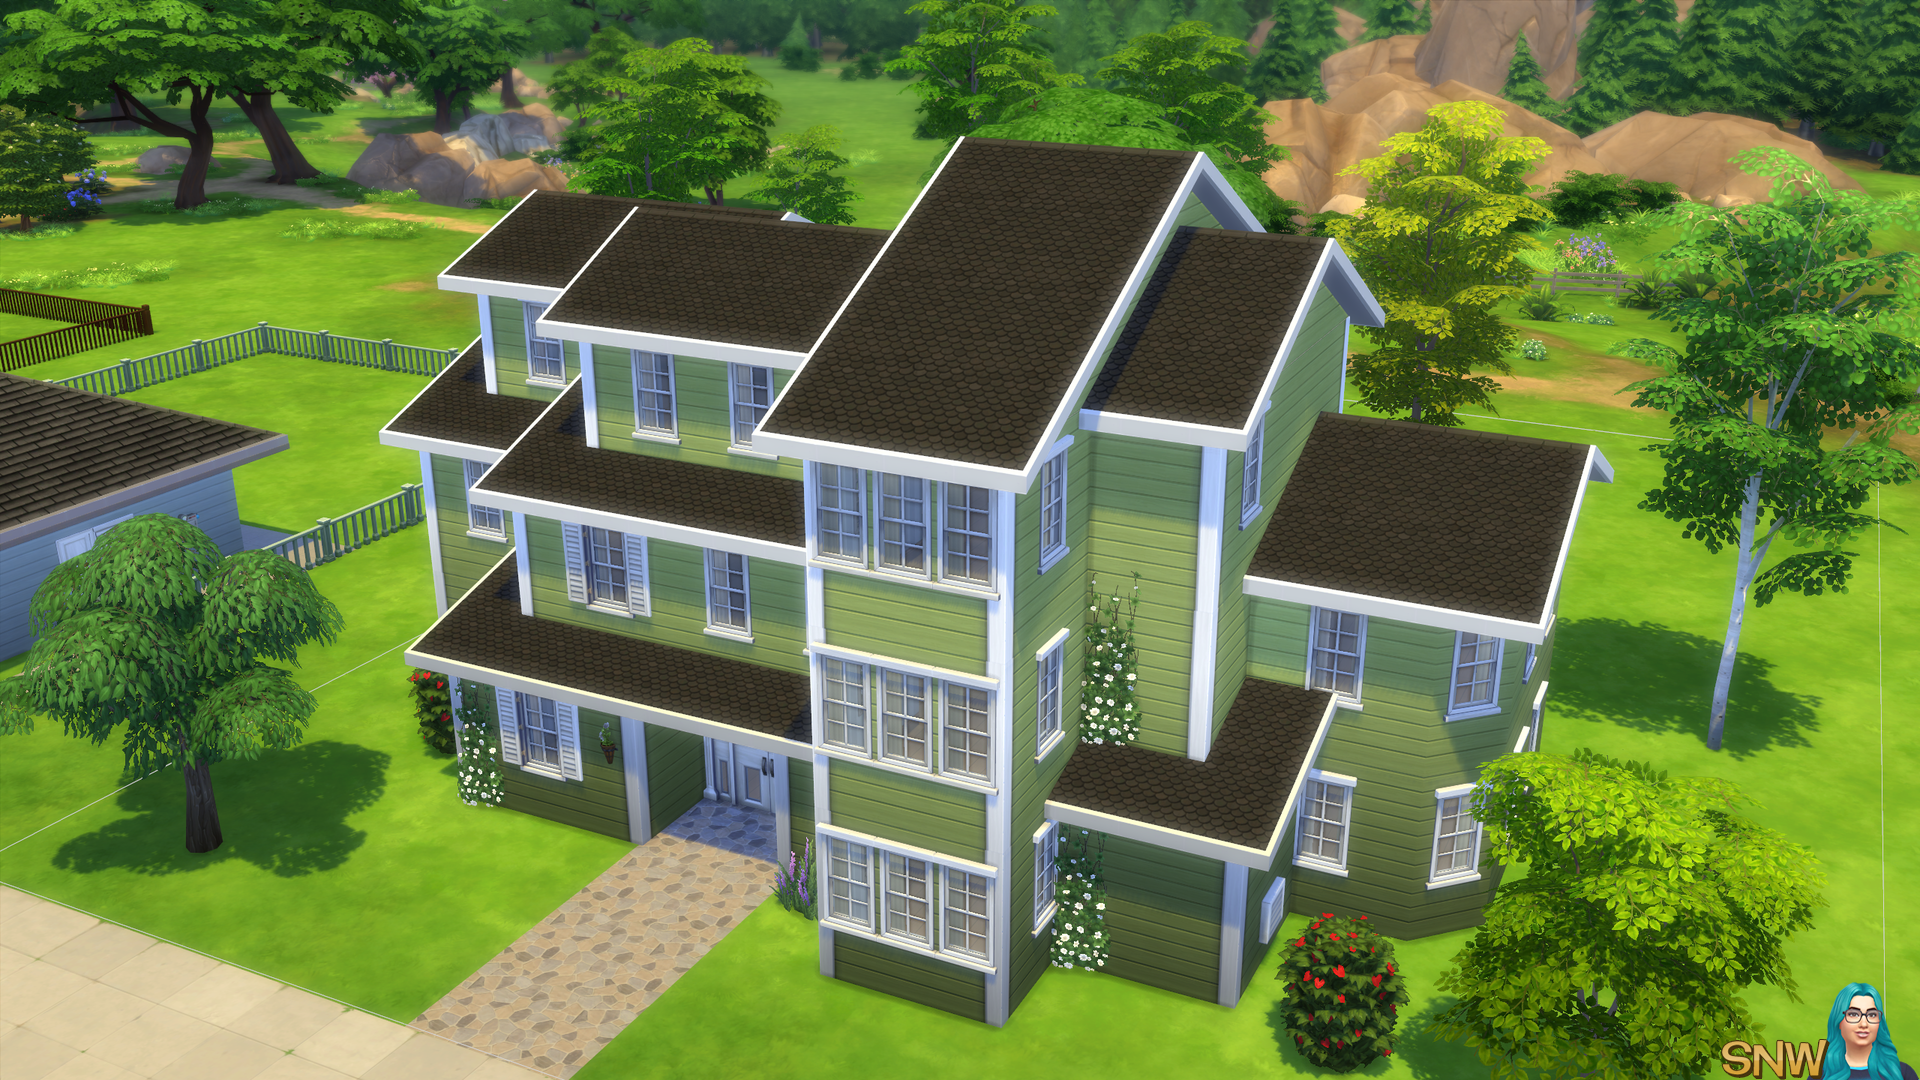 Clapboard crush siding walls set 3 with white corner for Sims 4 exterior design